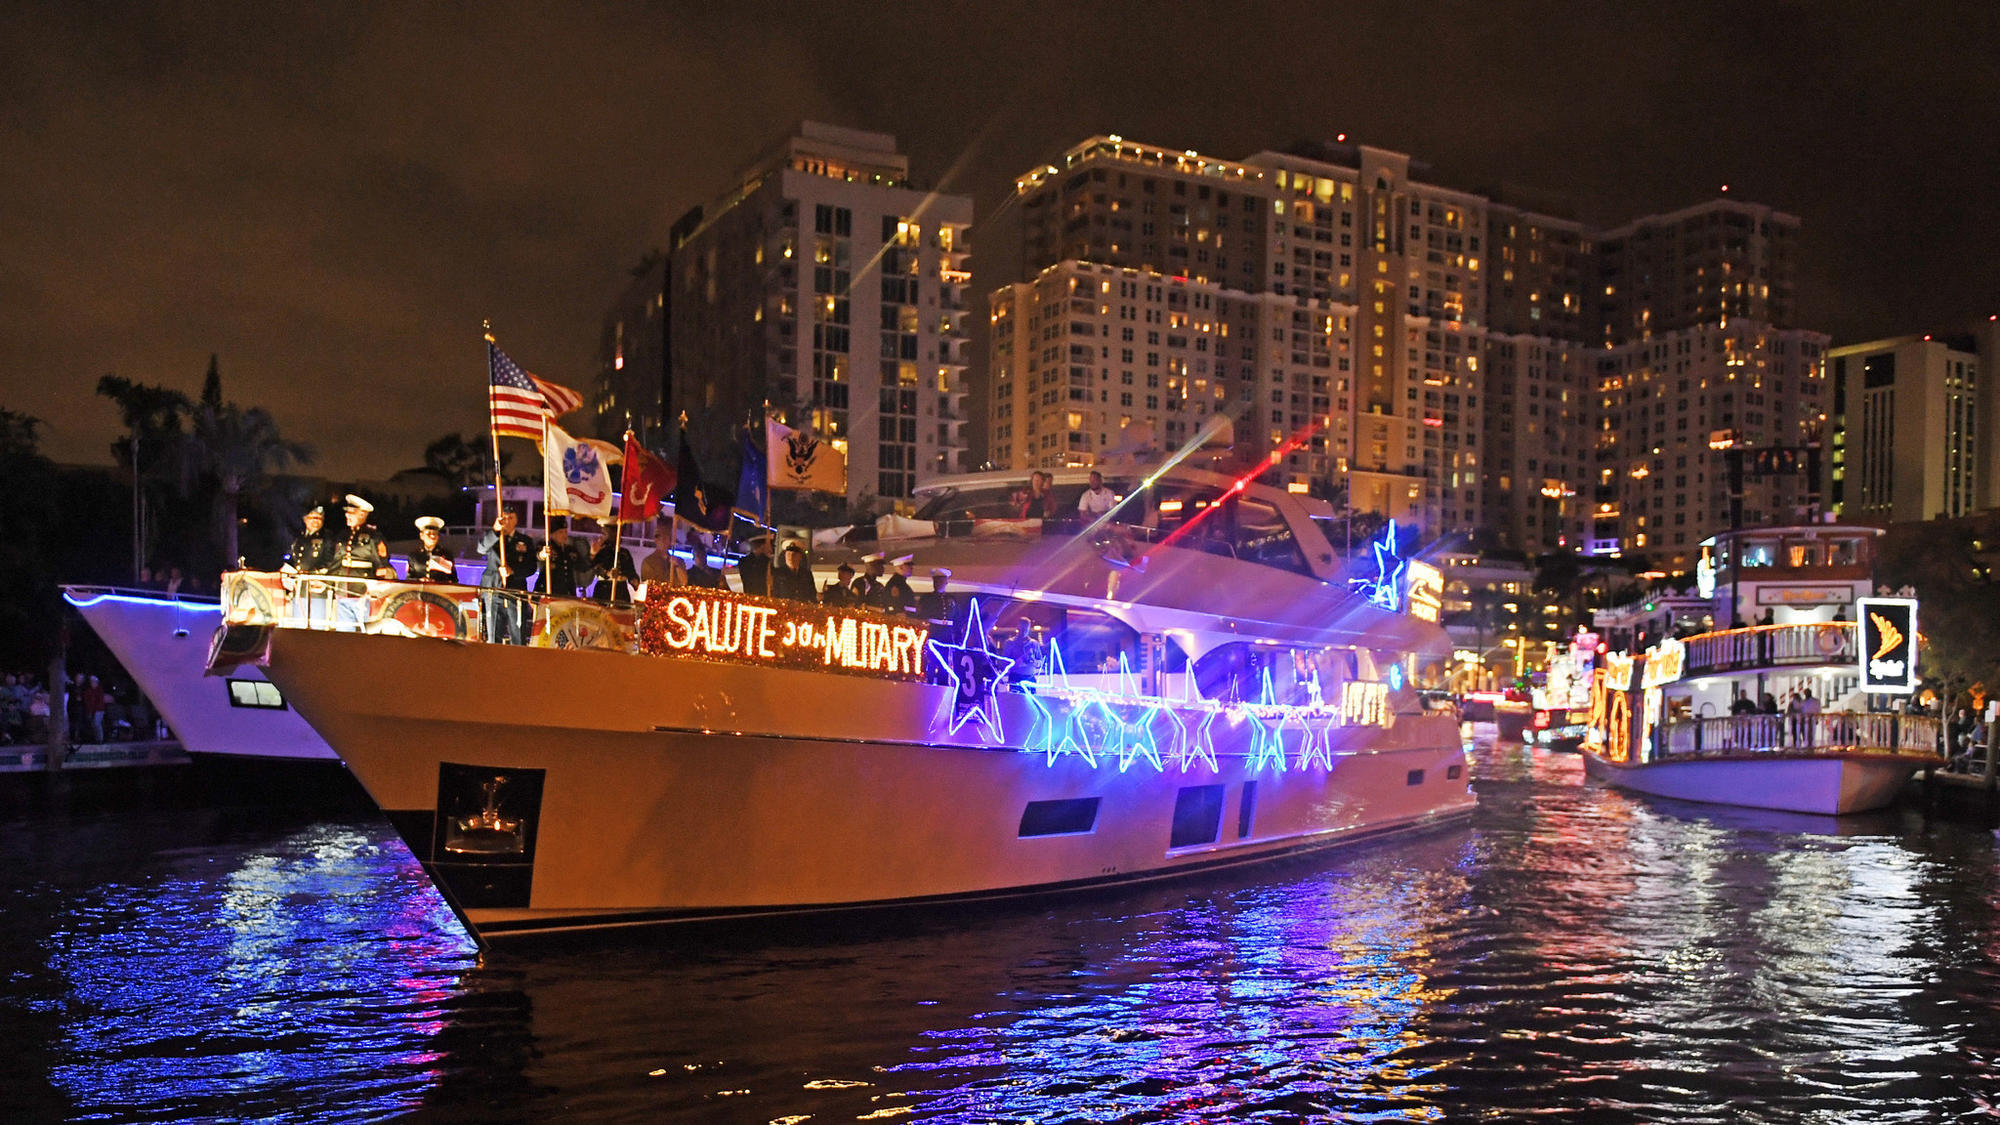 sf-winterfest-boat-parade-fort-lauderdale-miami-palm-beach-20181129.jpg